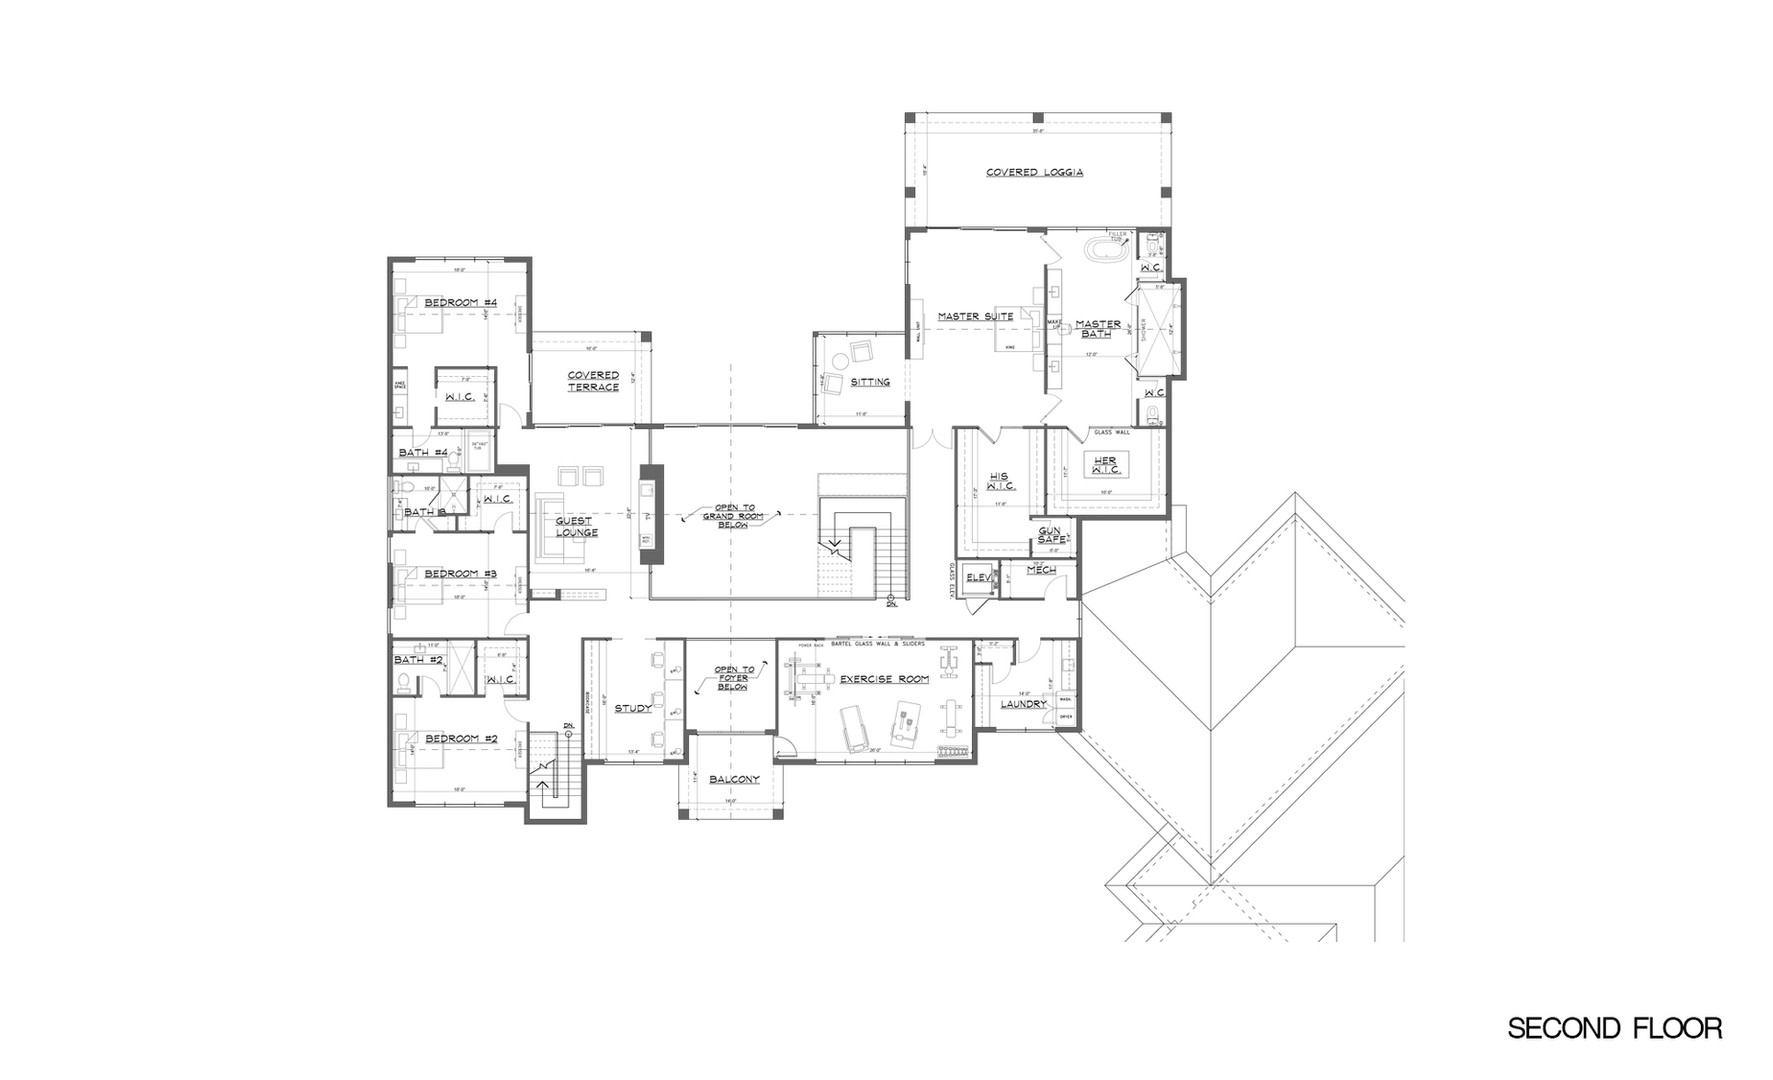 Second Floor_Harley Road_Picasso Homes.j